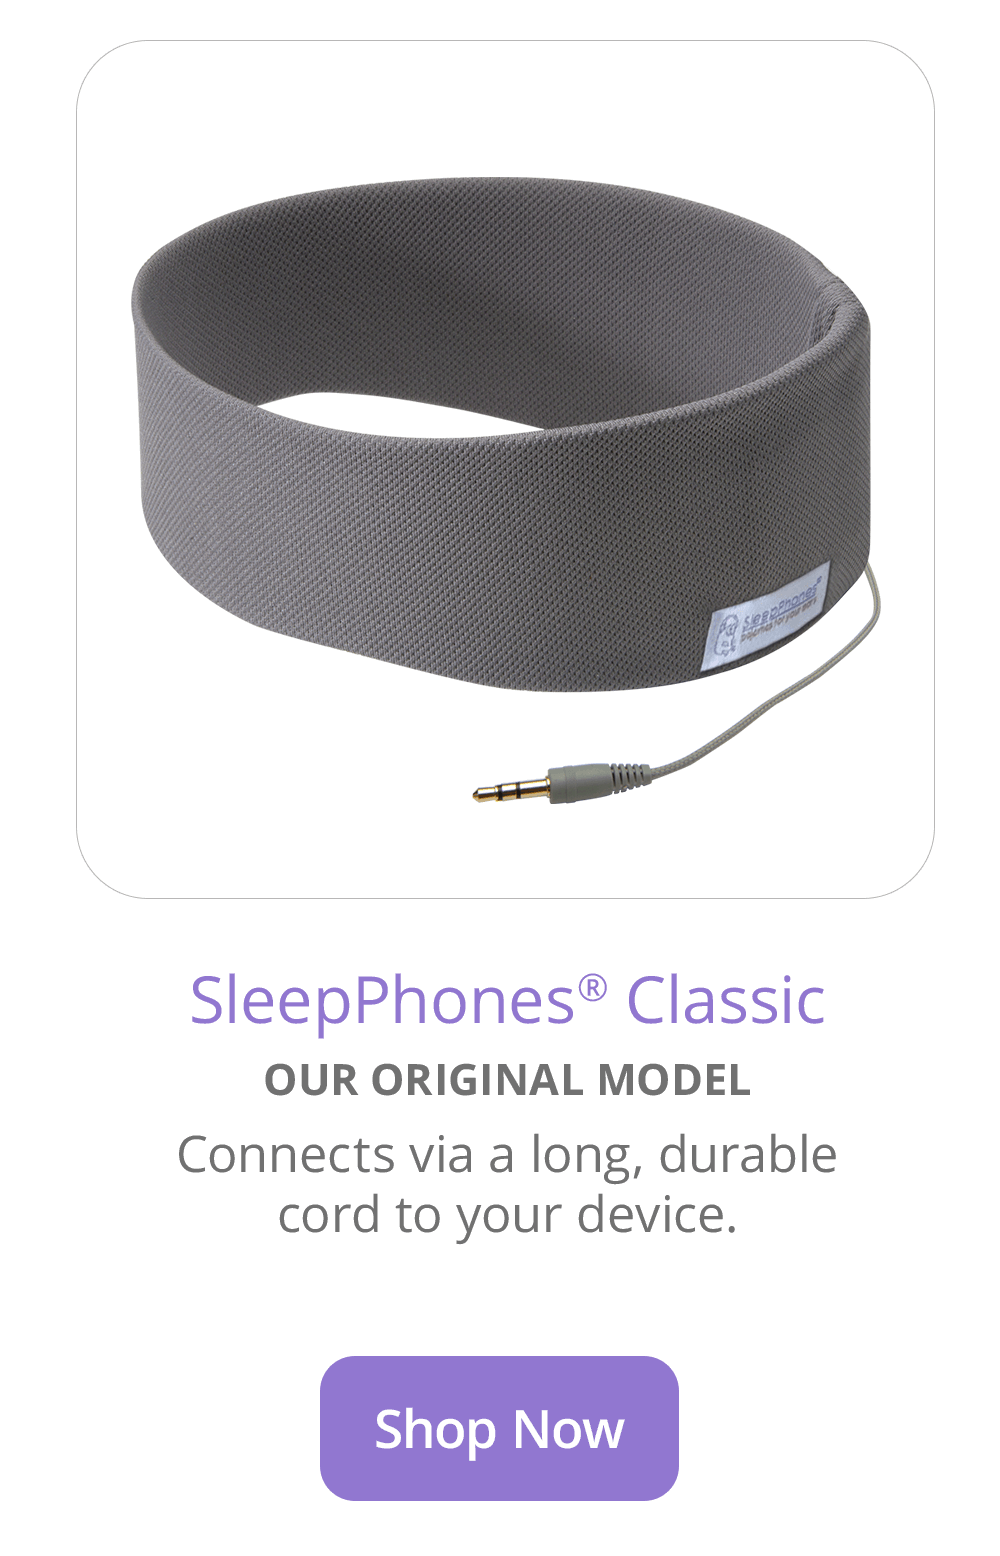 SleepPhones Classic Wired Sleep Headphones in Gray Breeze